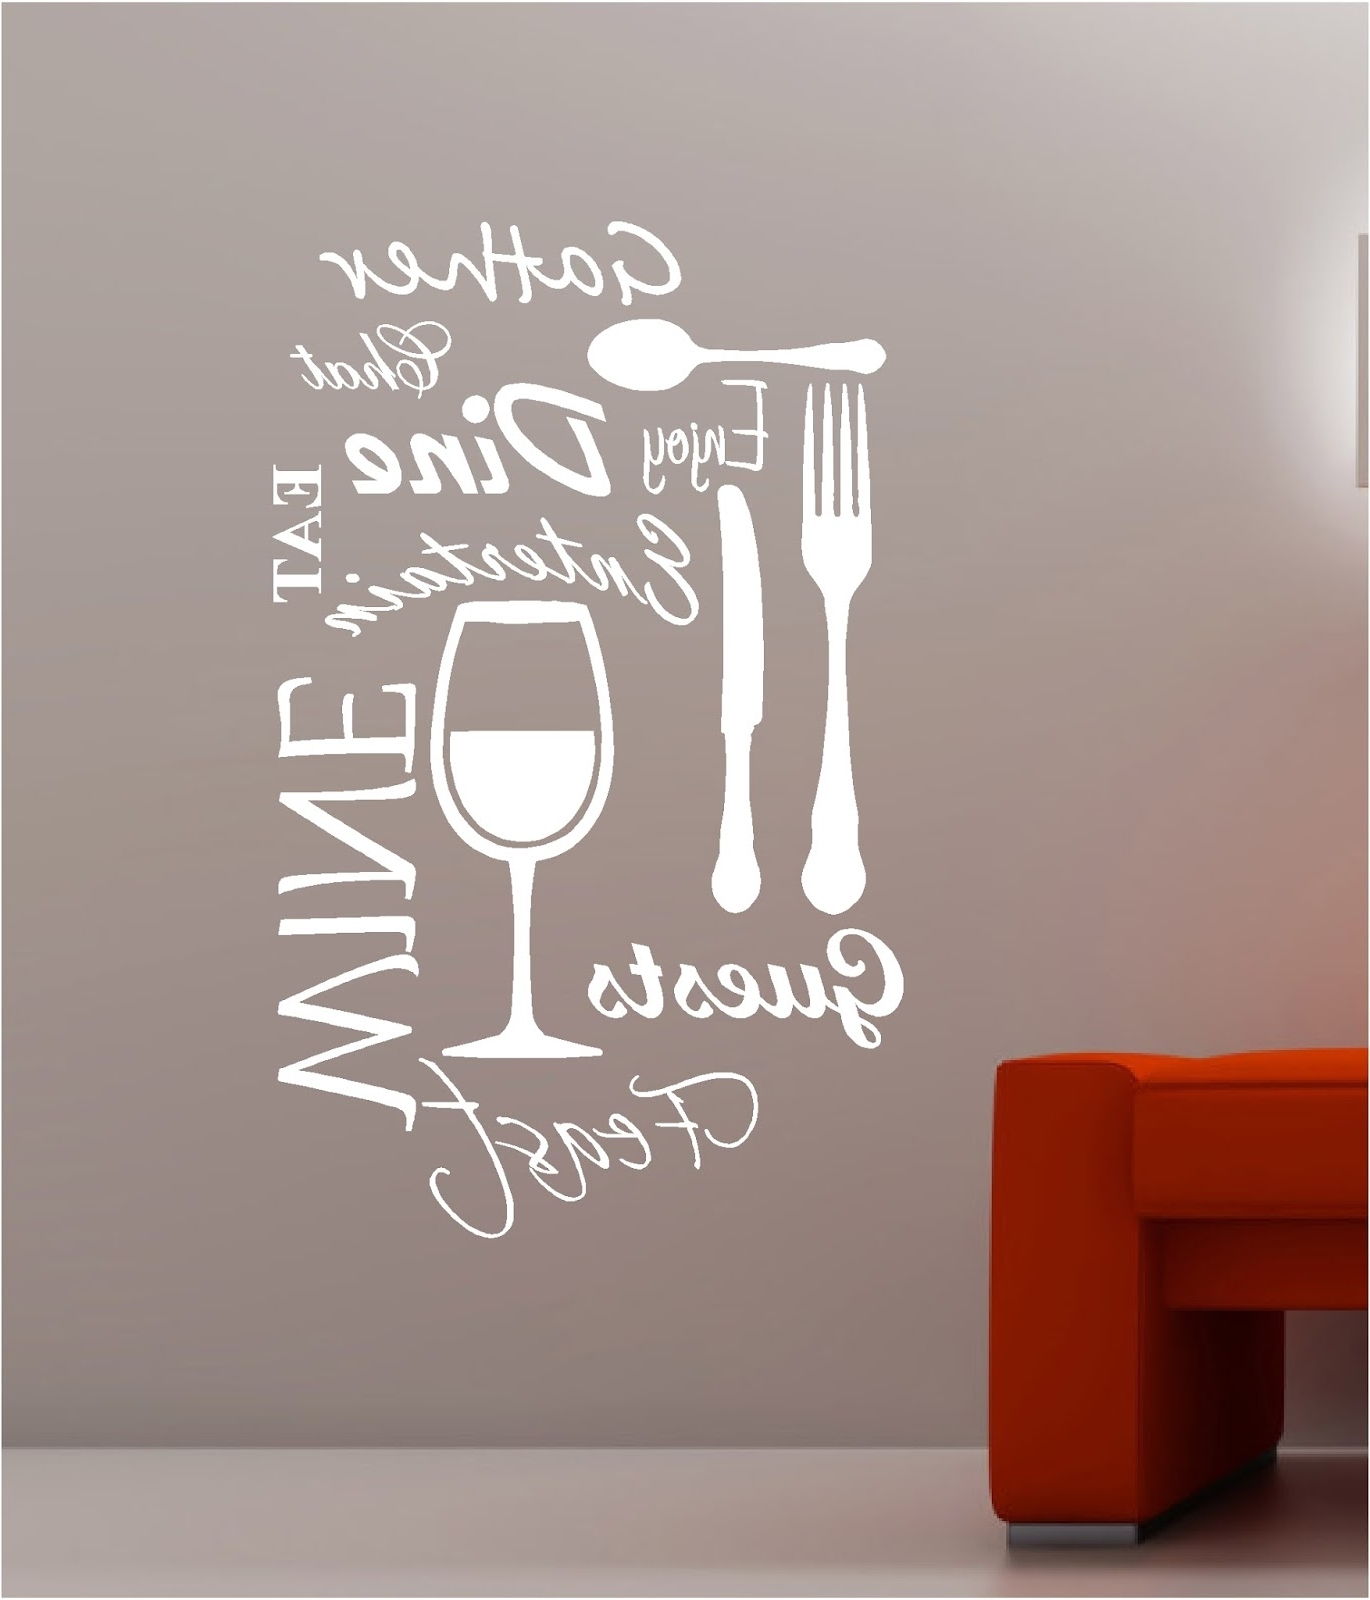 Wall Art Designs: Kitchen Wall Art Home Design Ideas Wall Decor With Regard To 2018 Art For Kitchen Walls (View 4 of 15)